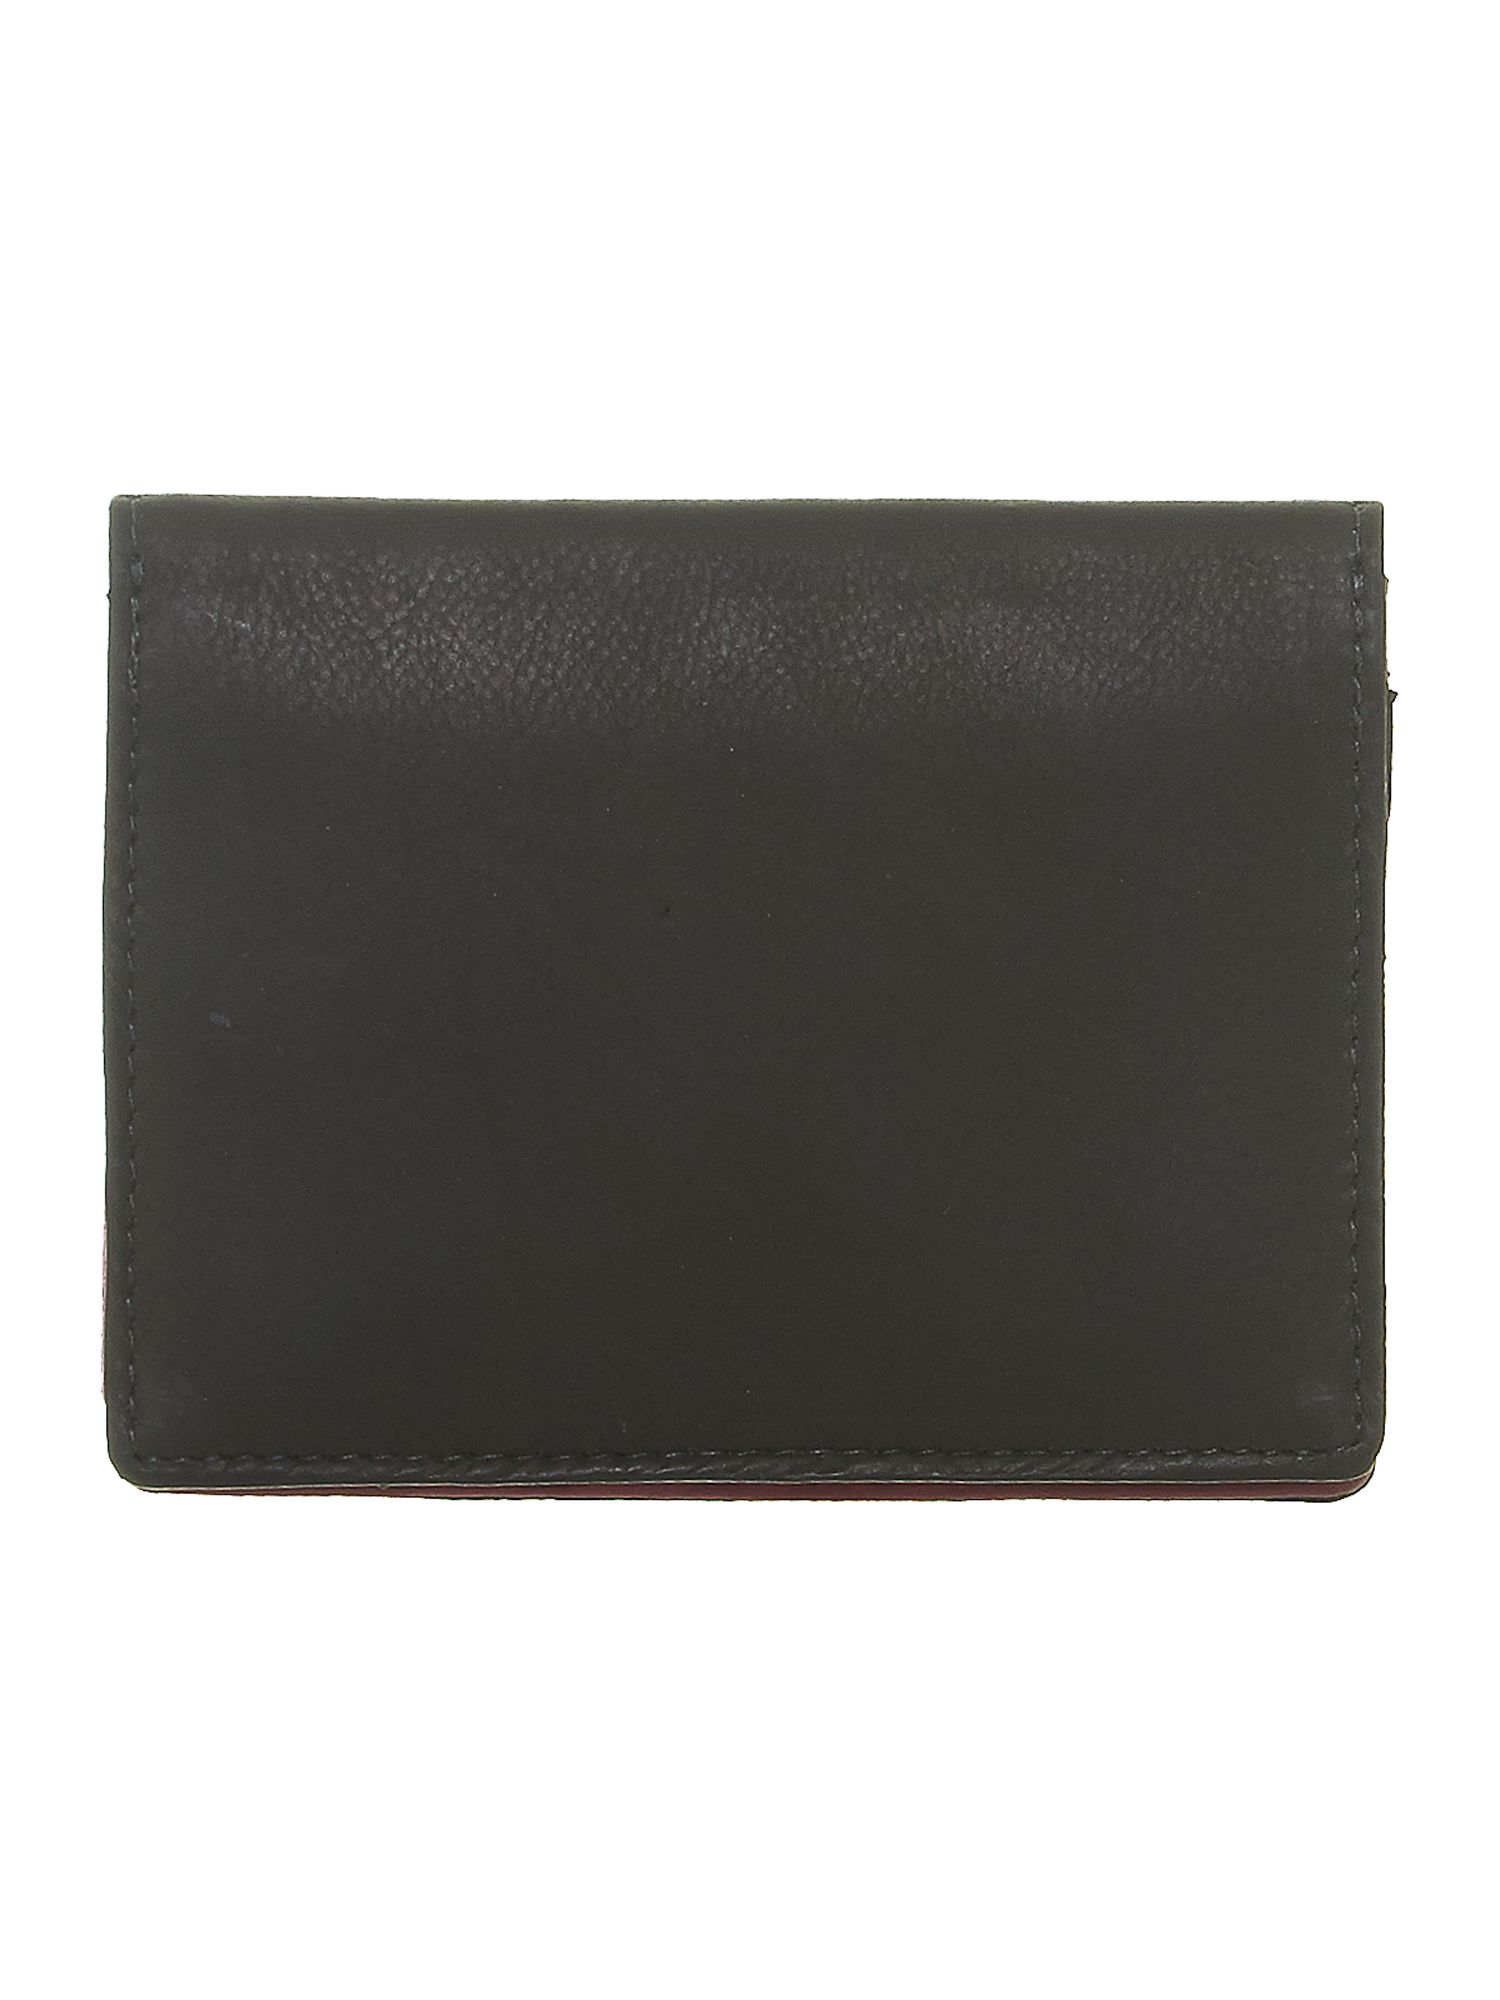 Black with purple internal card holder